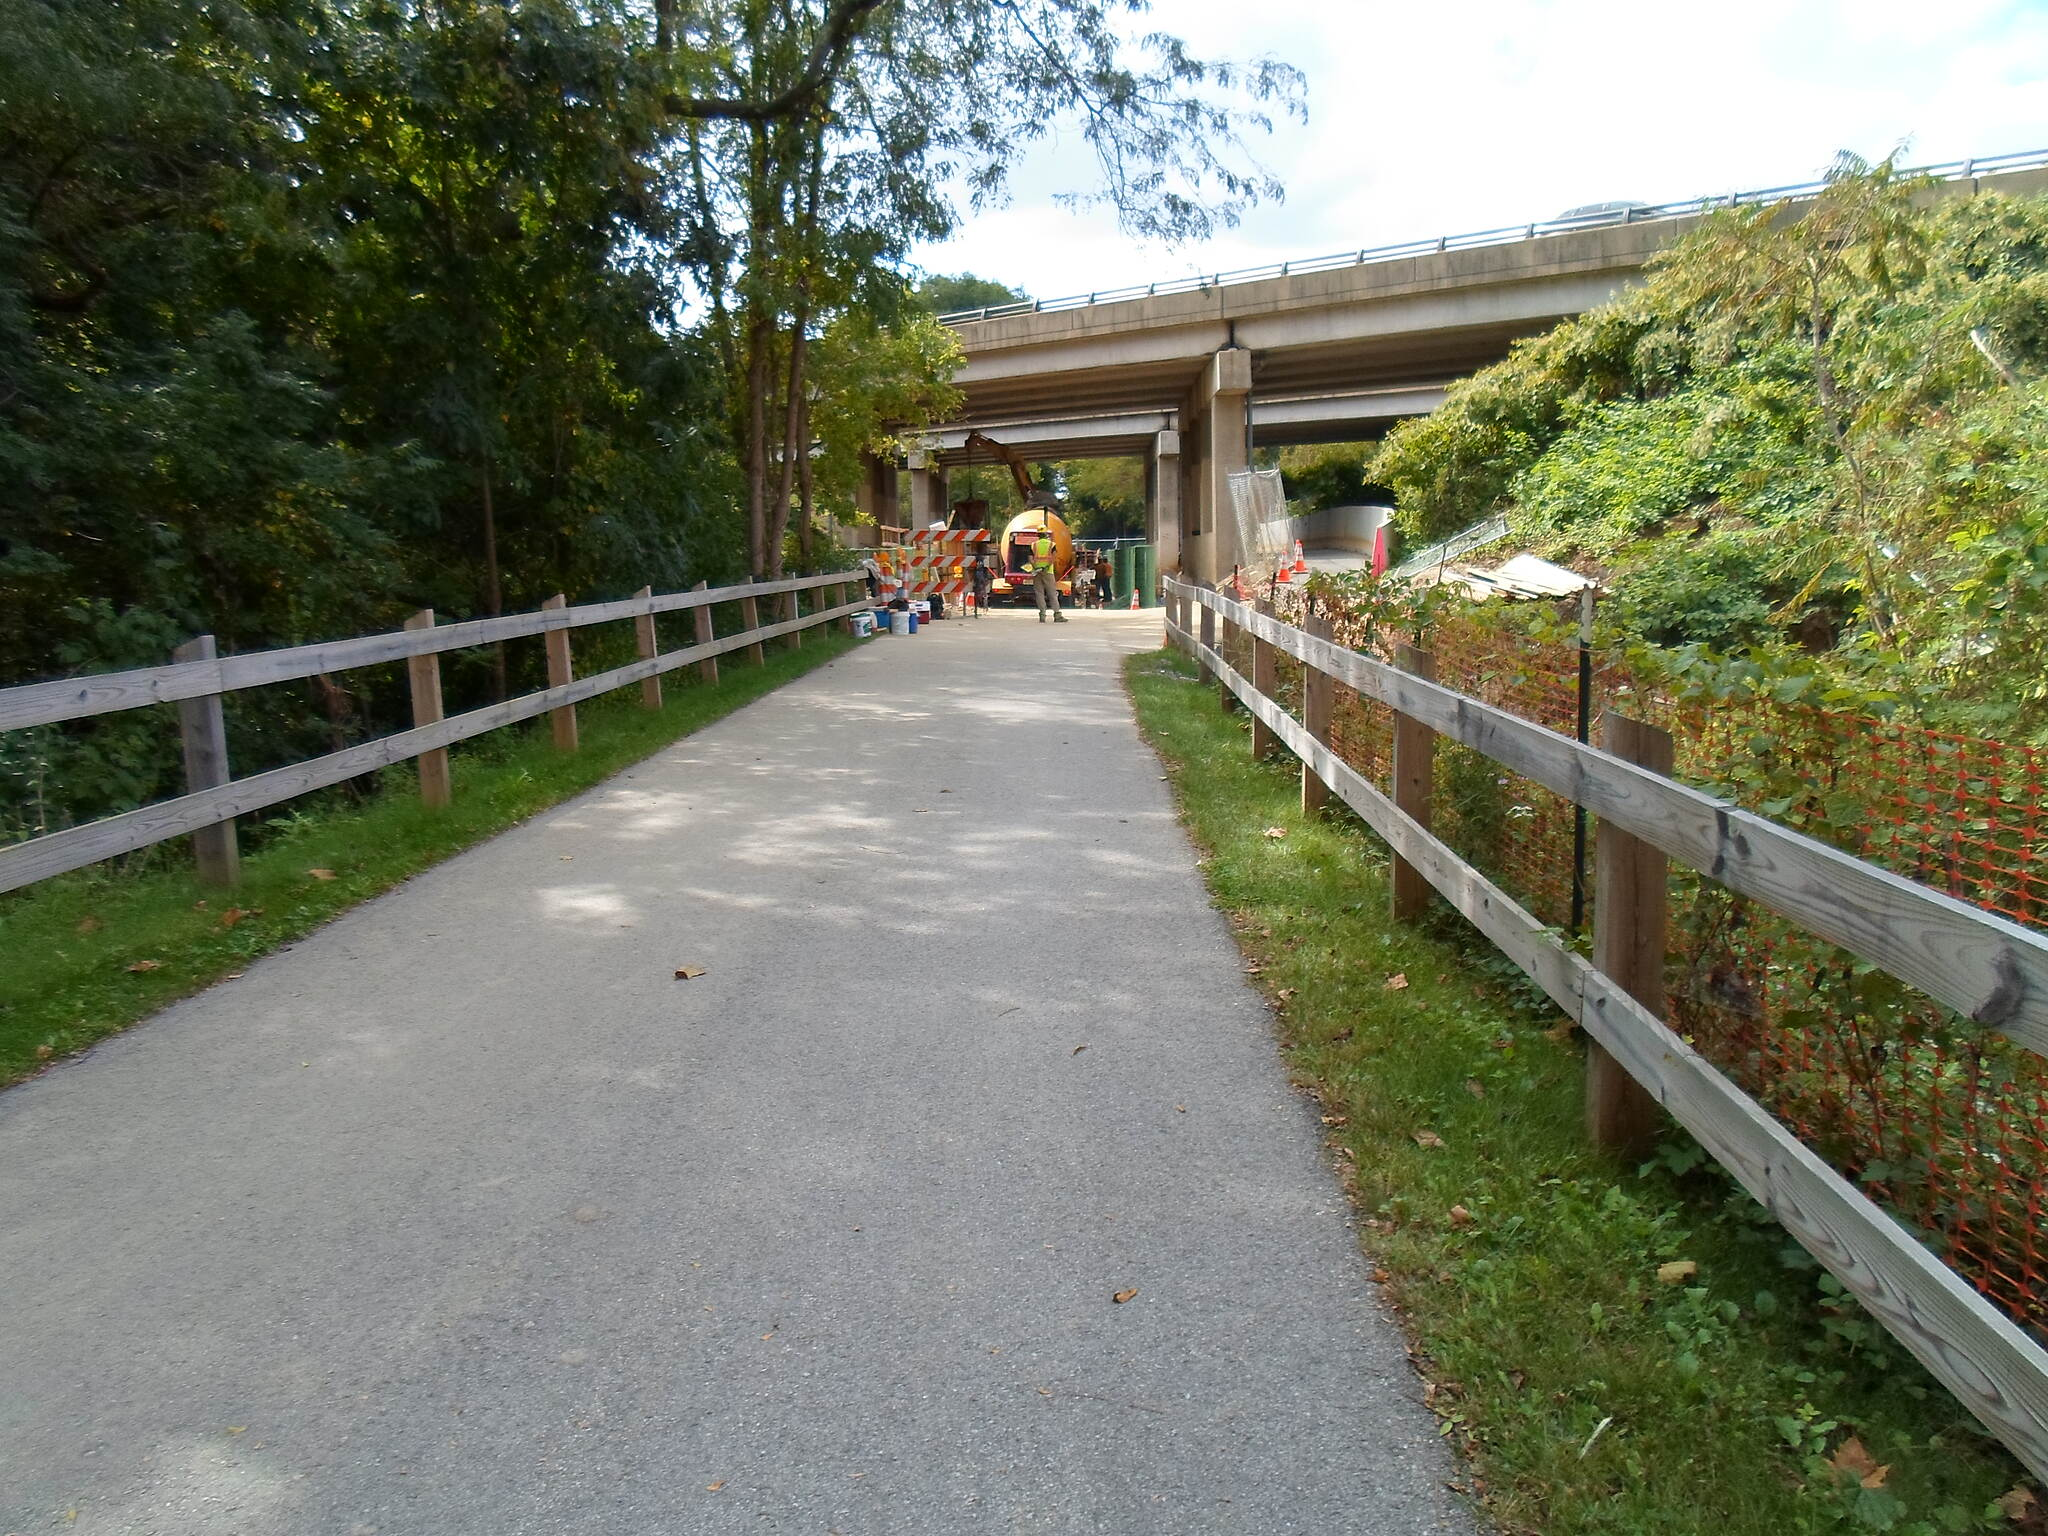 Chester Valley Trail Chester Valley Trail Approaching the Route 202 underpass near the Battle of the Clouds Park. Users are advised to be careful because of ongoing construction, though there is a clearly marked path around the work zone. Taken September 2013.